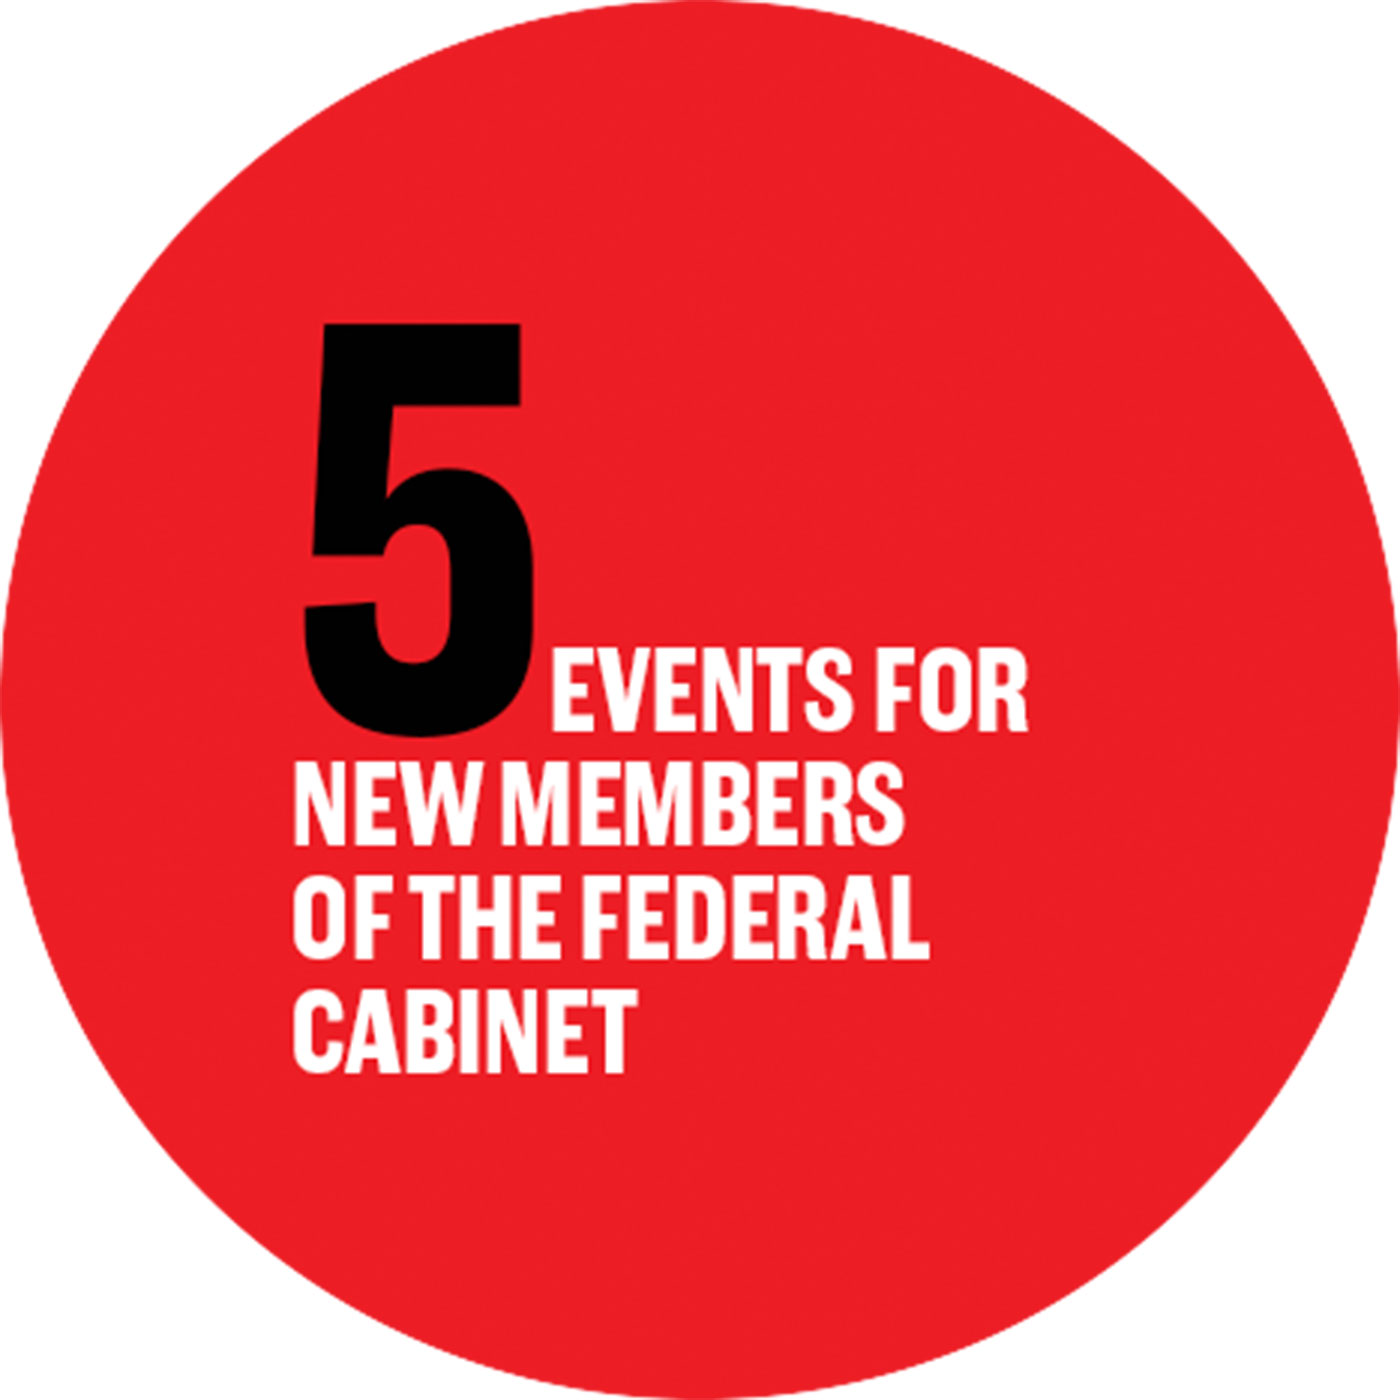 5 events for new members of the federal cabinet